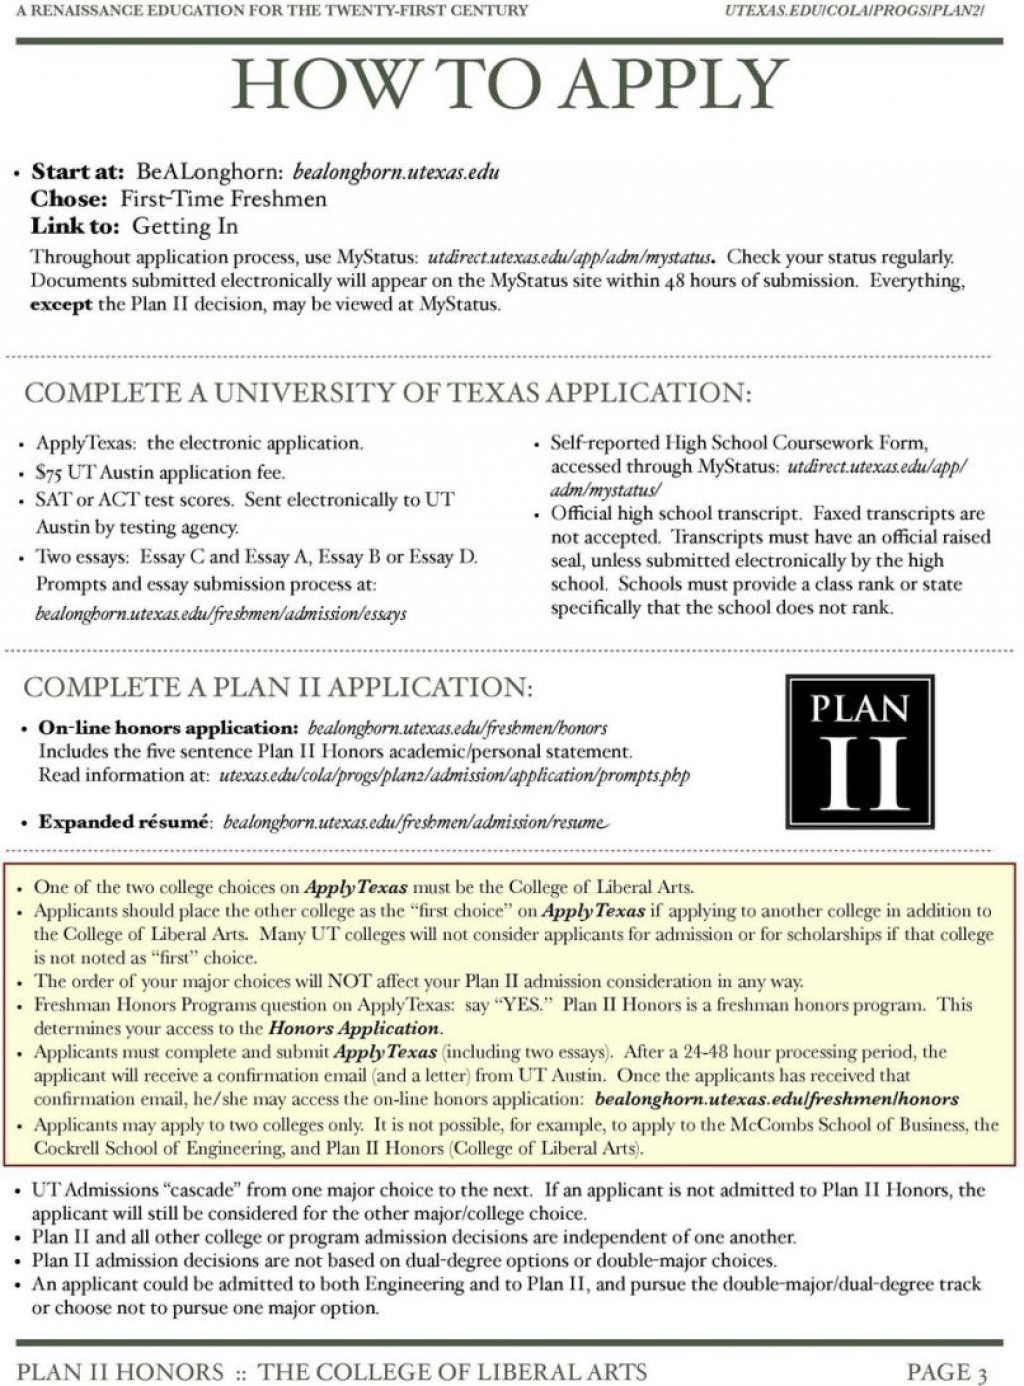 004 Essay Example Applytexas Prompts Poemdoc Or Apply Texas Topic Examples P Top Essays 2019 That Worked Word Limit Large